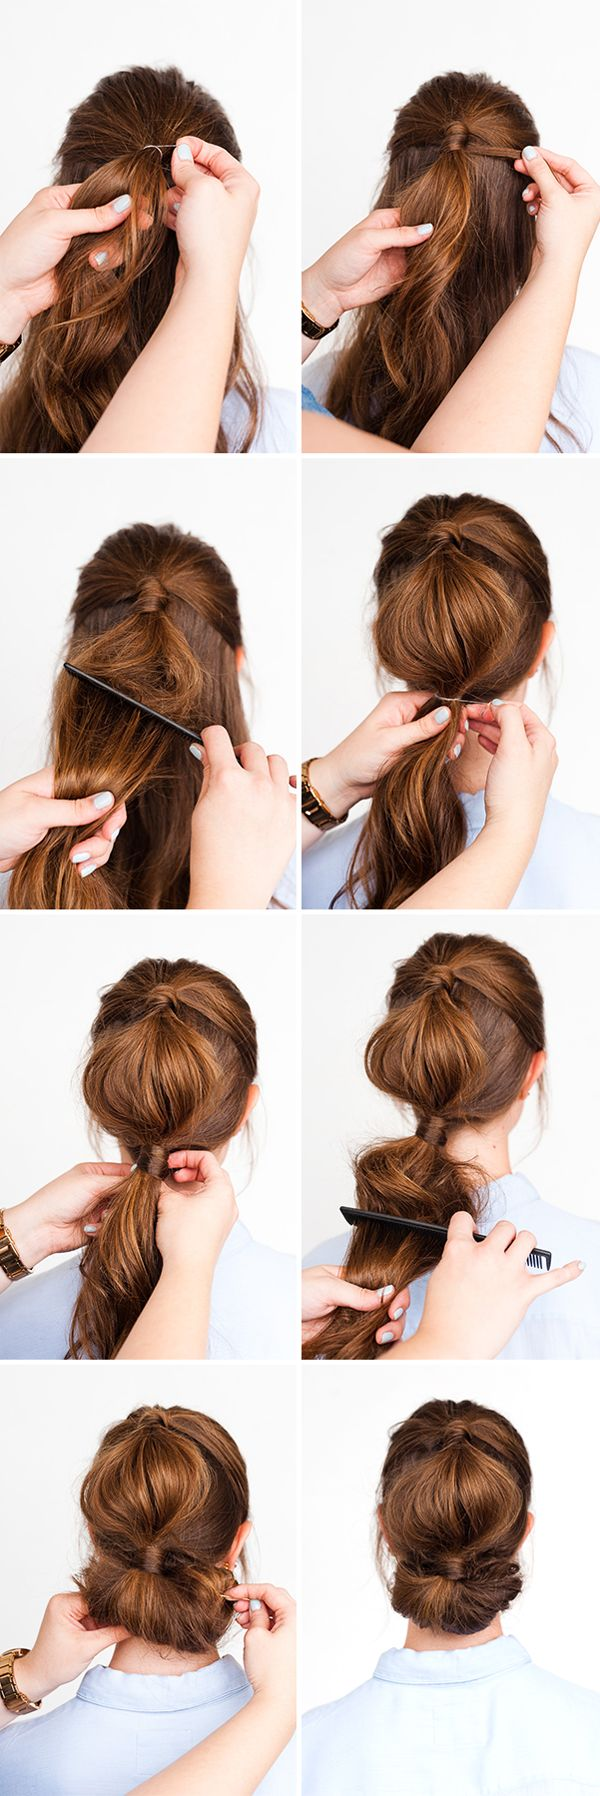 Holiday Hair don't care! Here are two easy ways you can style your hair in 10 minutes for the upcoming holiday shenanigans!